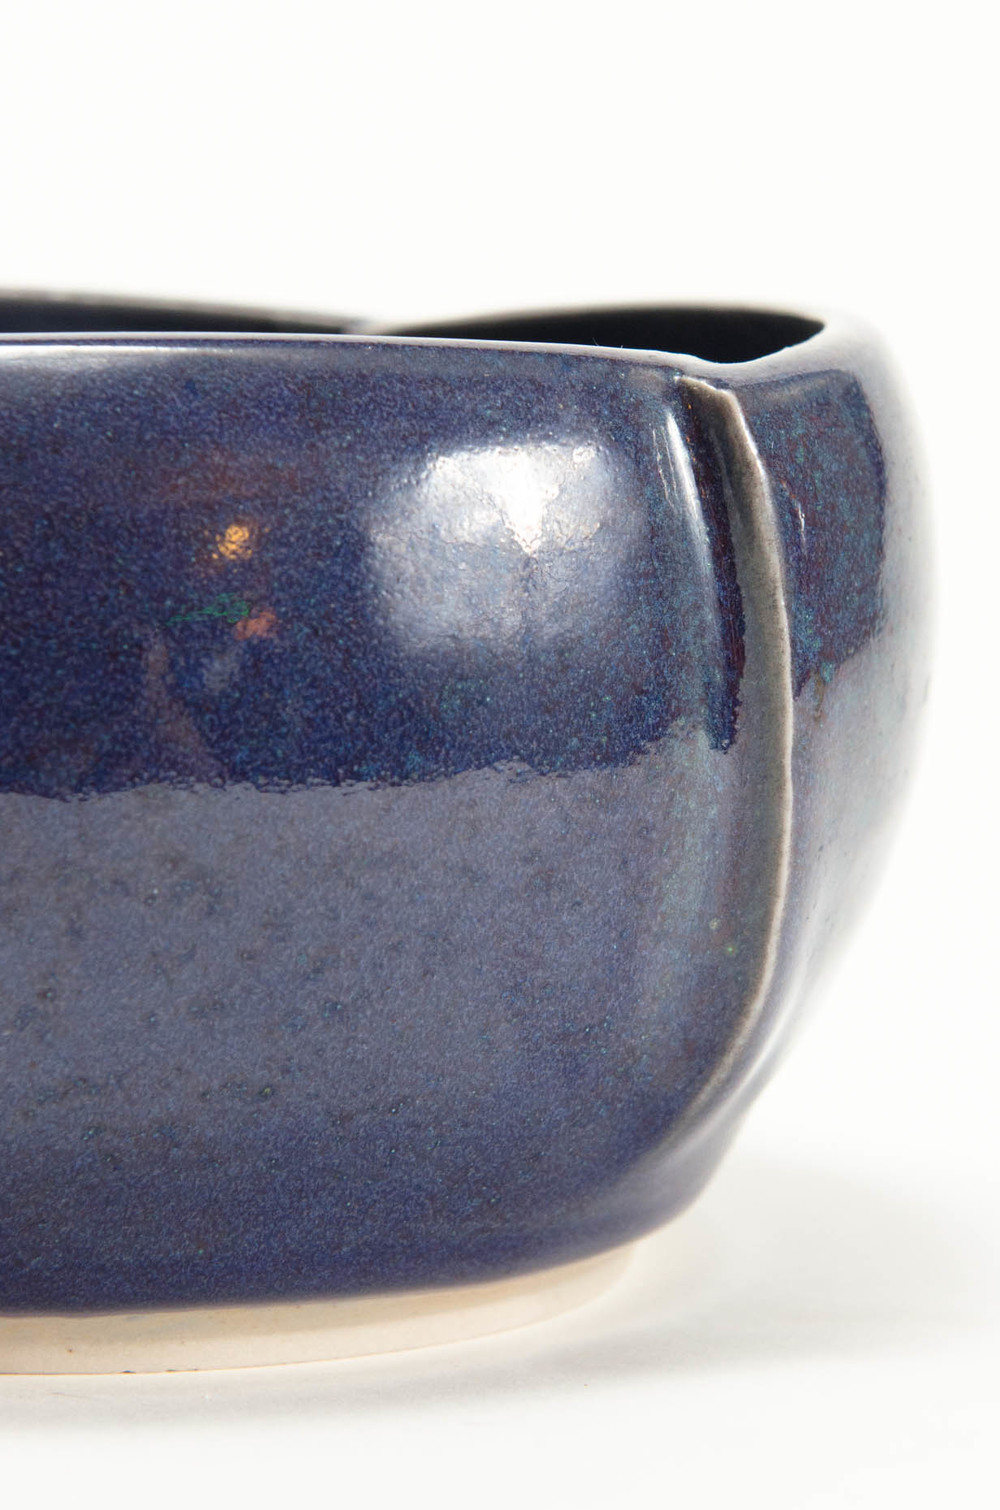 ClairePottery-33.jpg